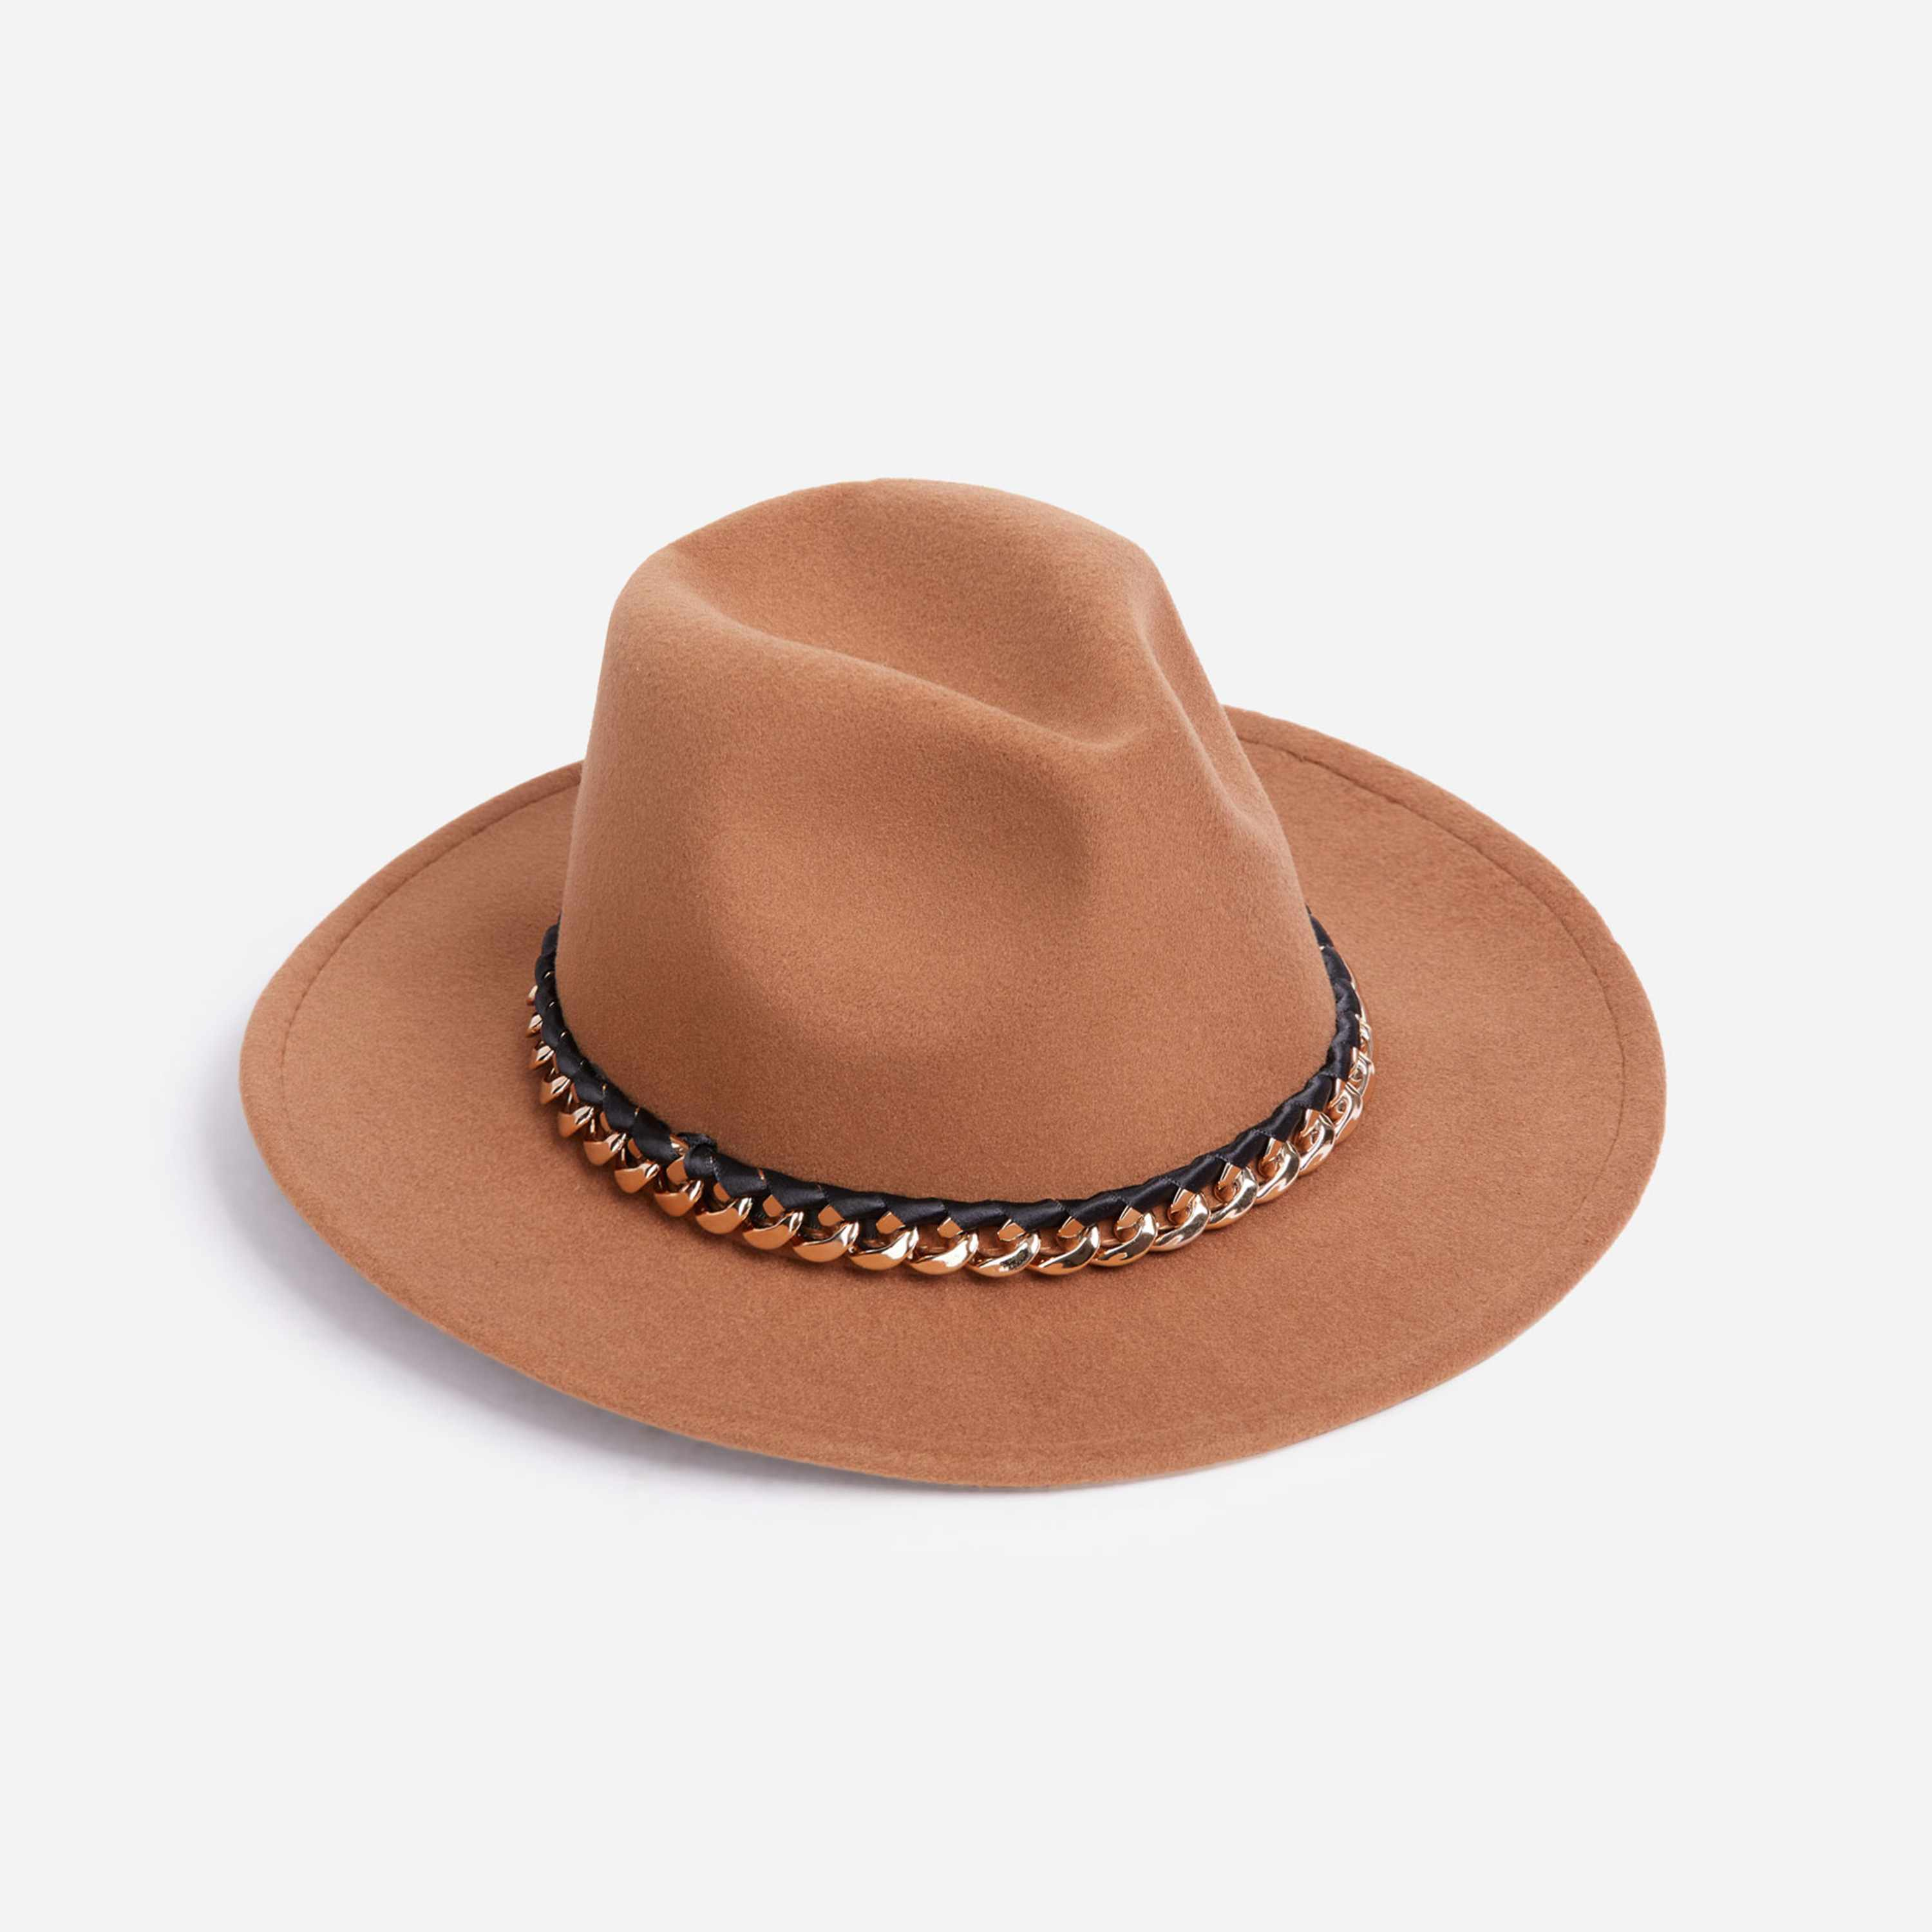 Chain Detail Felt Fedora Hat In Nude